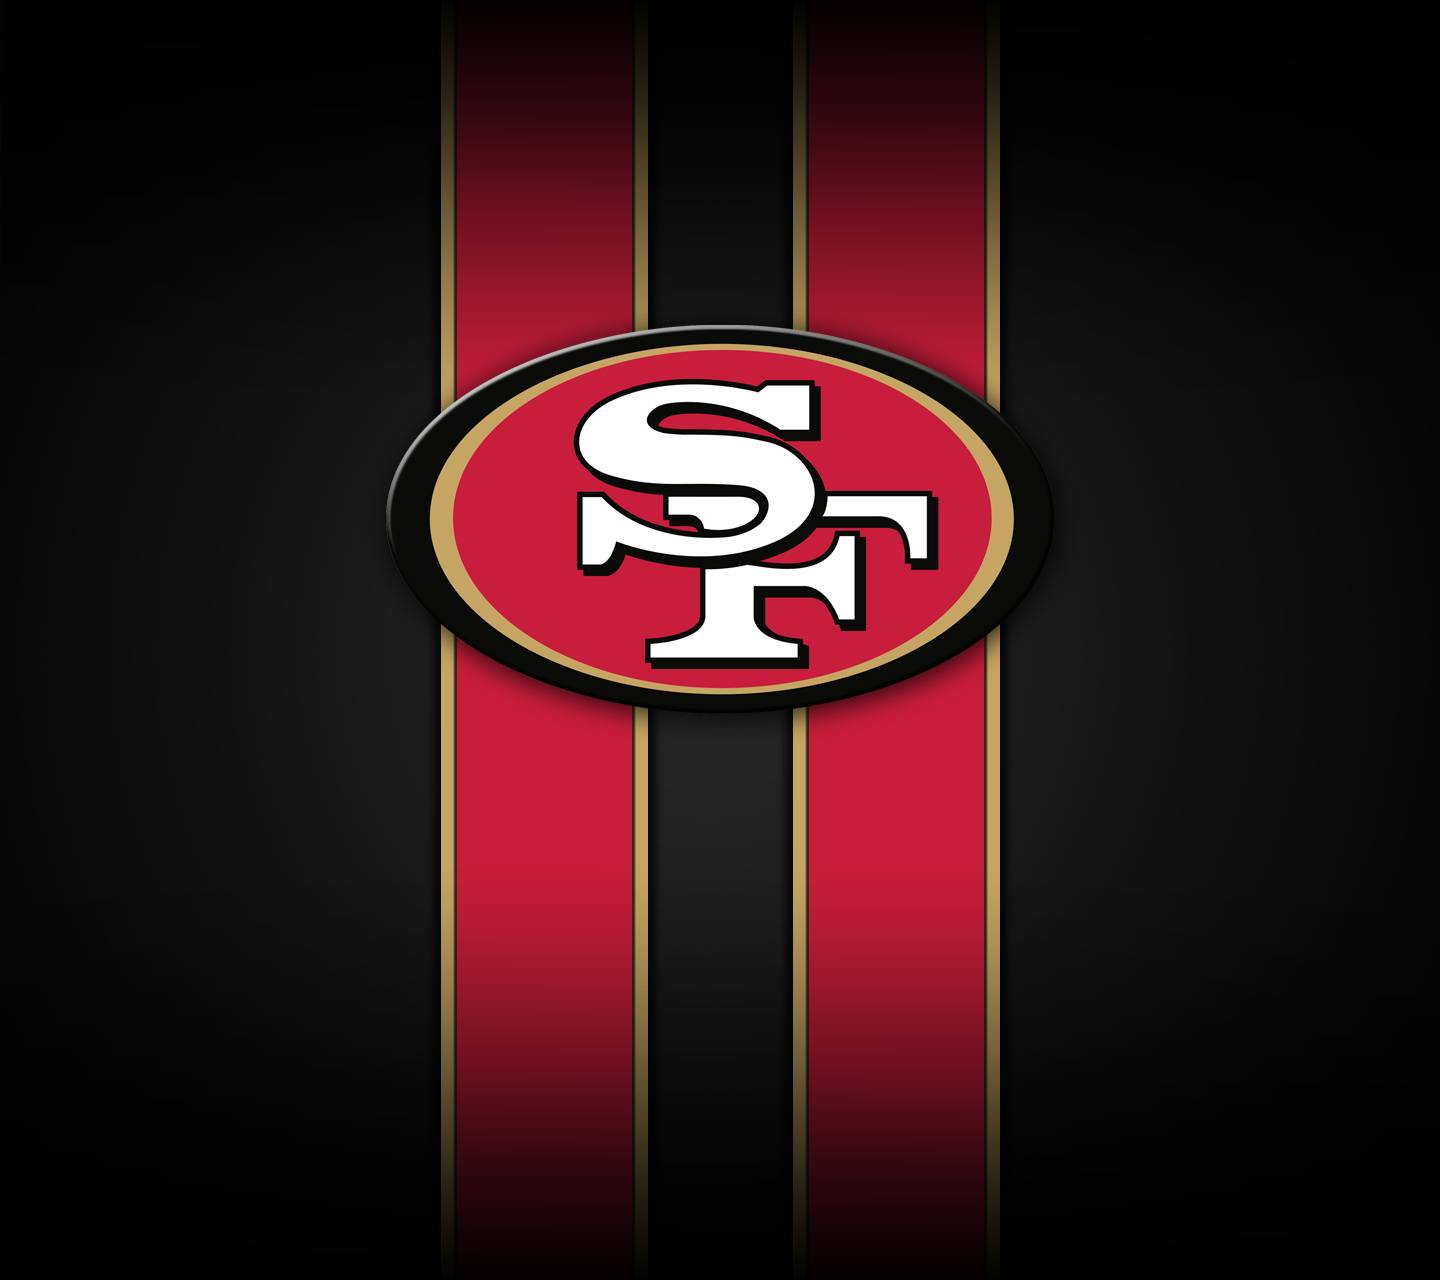 Download free 49ers wallpapers for your mobile phone most san francisco 49ers voltagebd Images